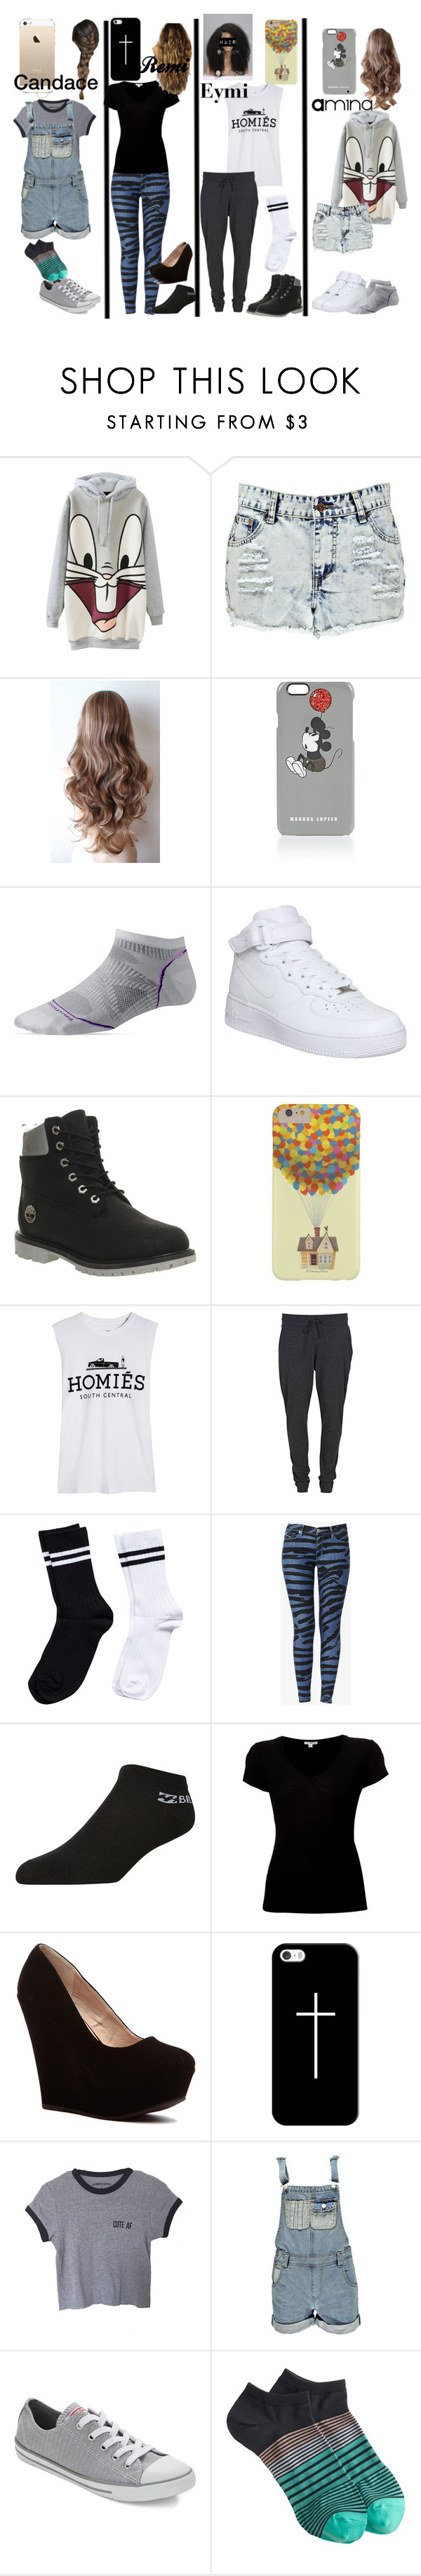 """""""Girls"""" by spreadthepeace890 ❤ liked on Polyvore featuring Boohoo, Markus Lupfer, Smartwool, NIKE, Timberland, Brian Lichtenberg, VILA, Pieces, Hudson Jeans and Billabong"""